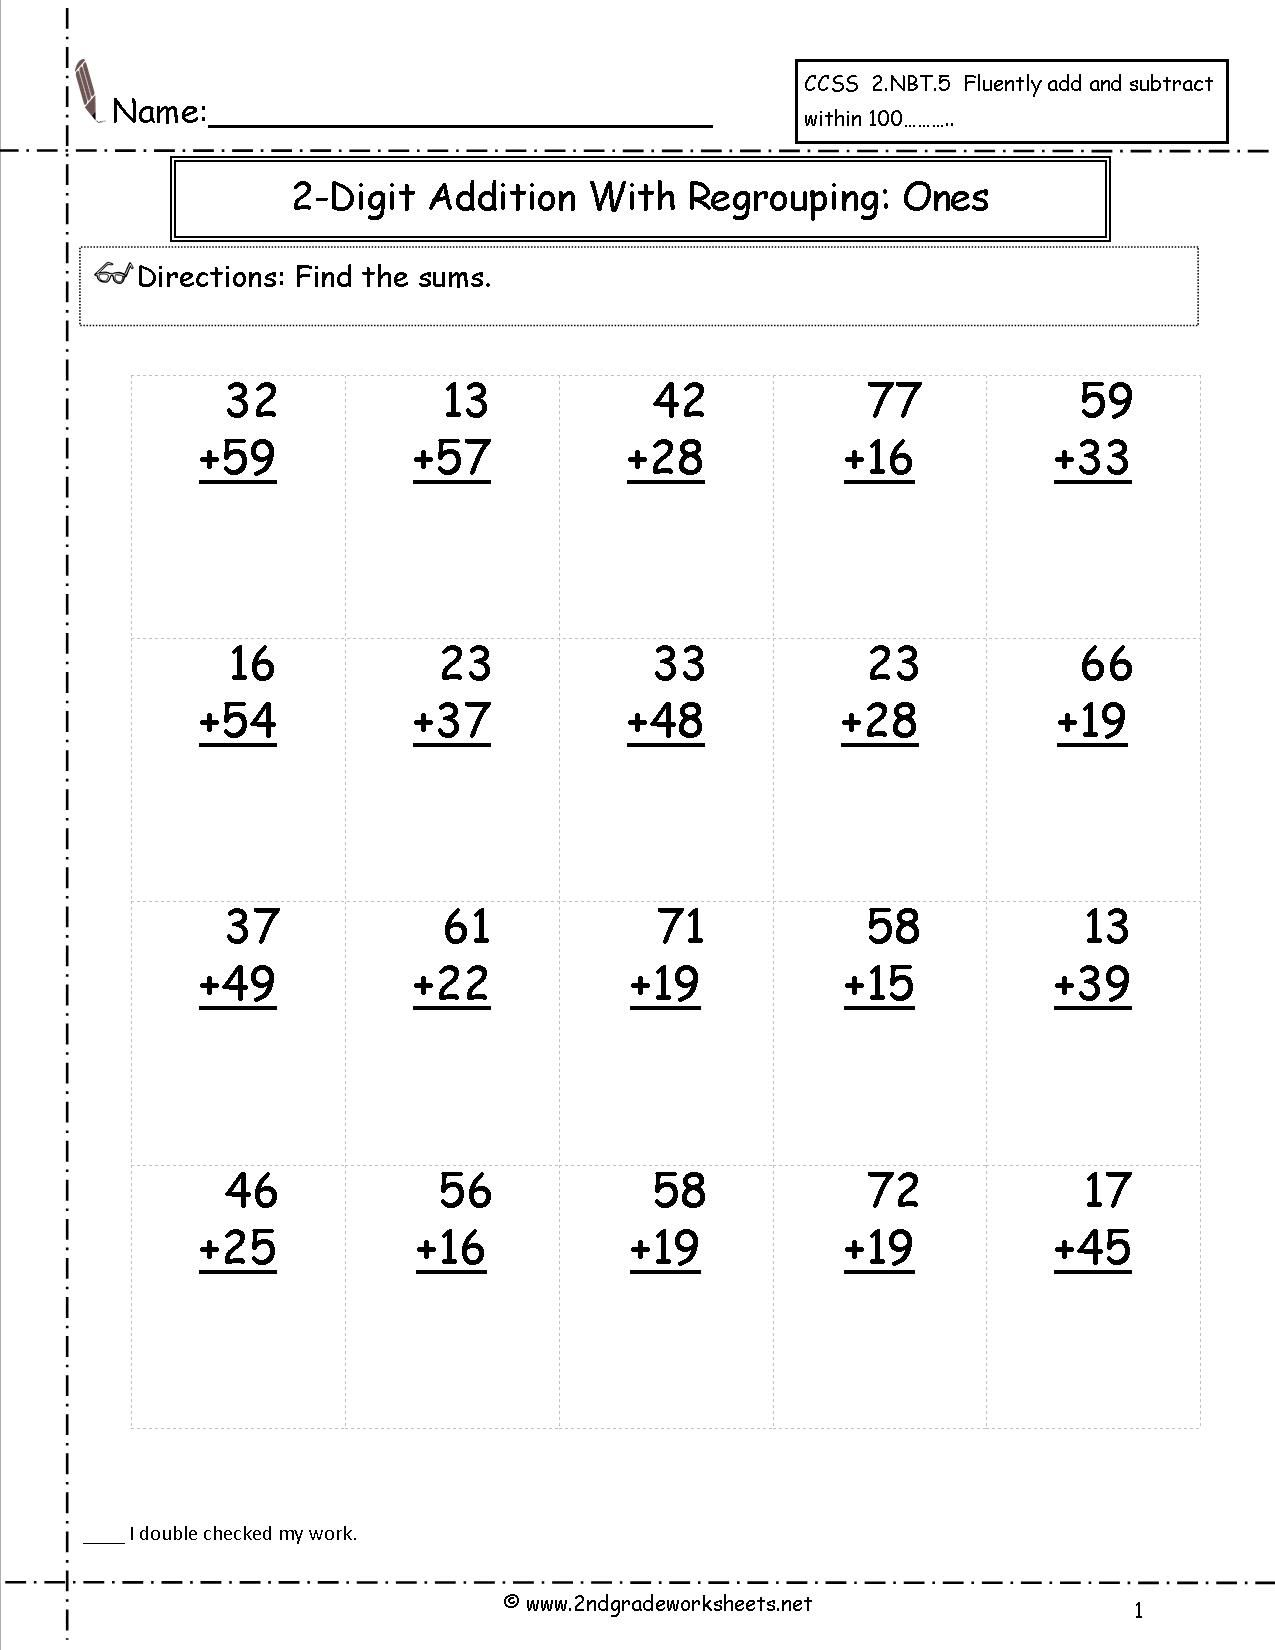 Worksheets Two Digit Addition Worksheets two digit addition with regrouping ones to tens place worksheet worksheet